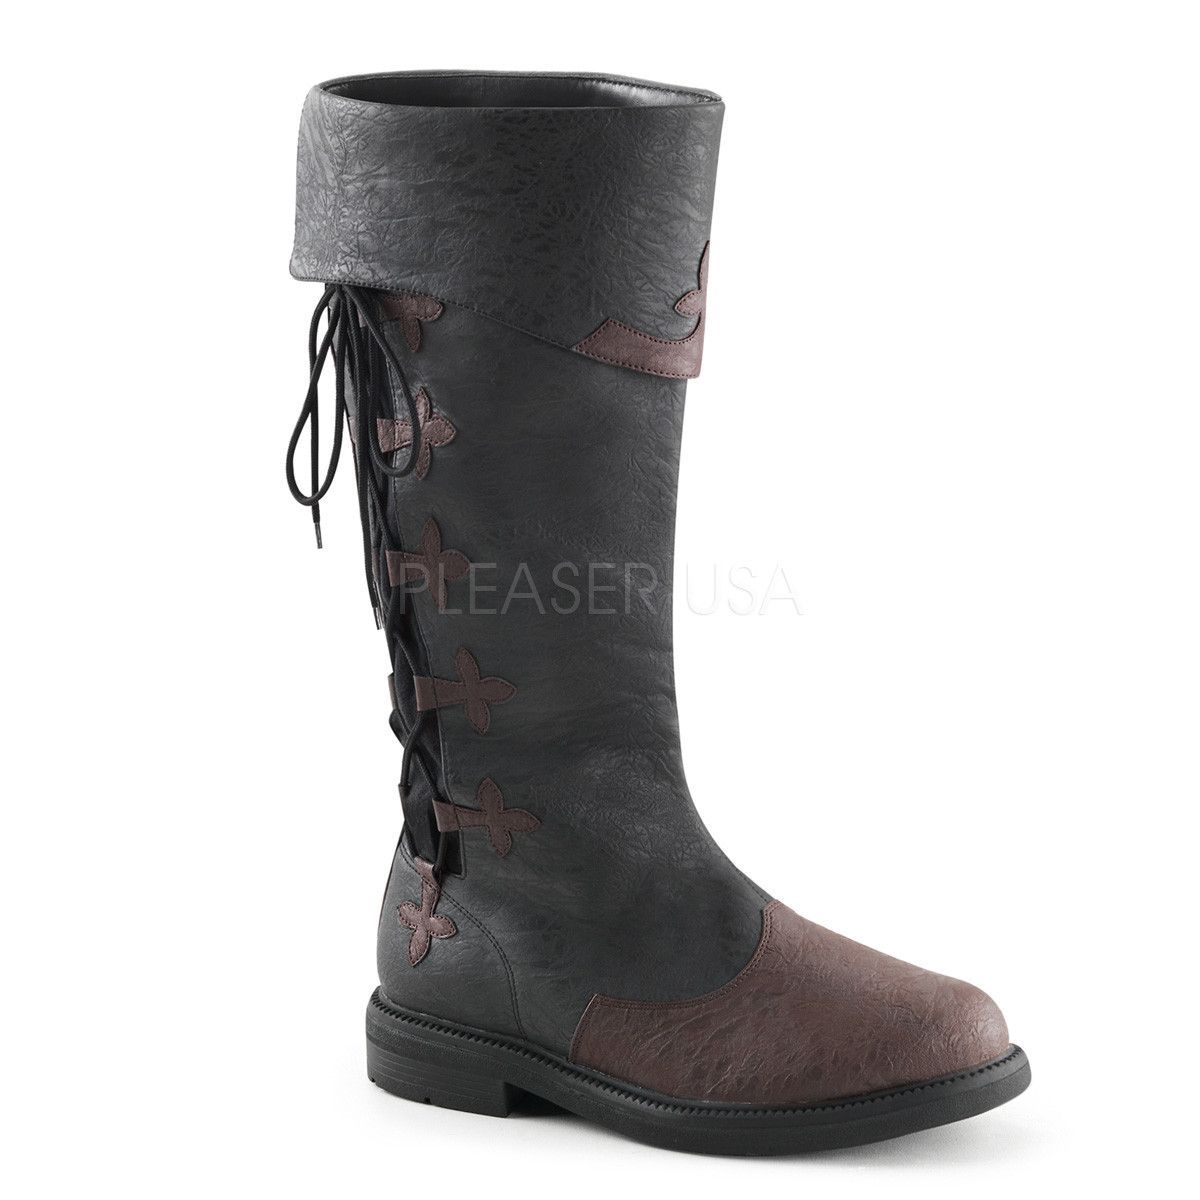 CAPTAIN-110 Men's Black-Brown Distressed Pu Pirate Boots